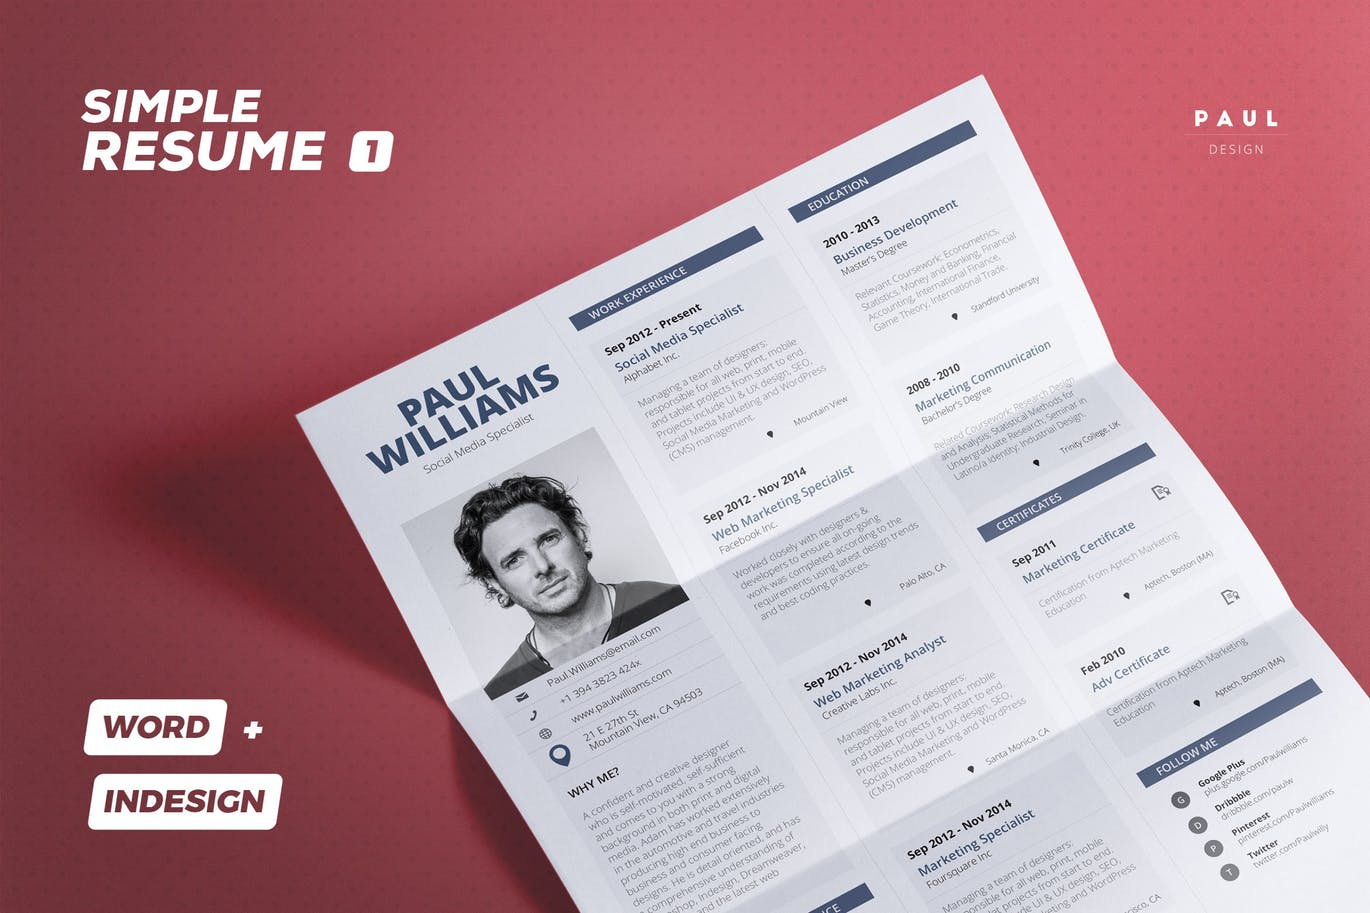 Simple-Resume-Cv 50+ Best CV & Resume Templates 2020 design tips